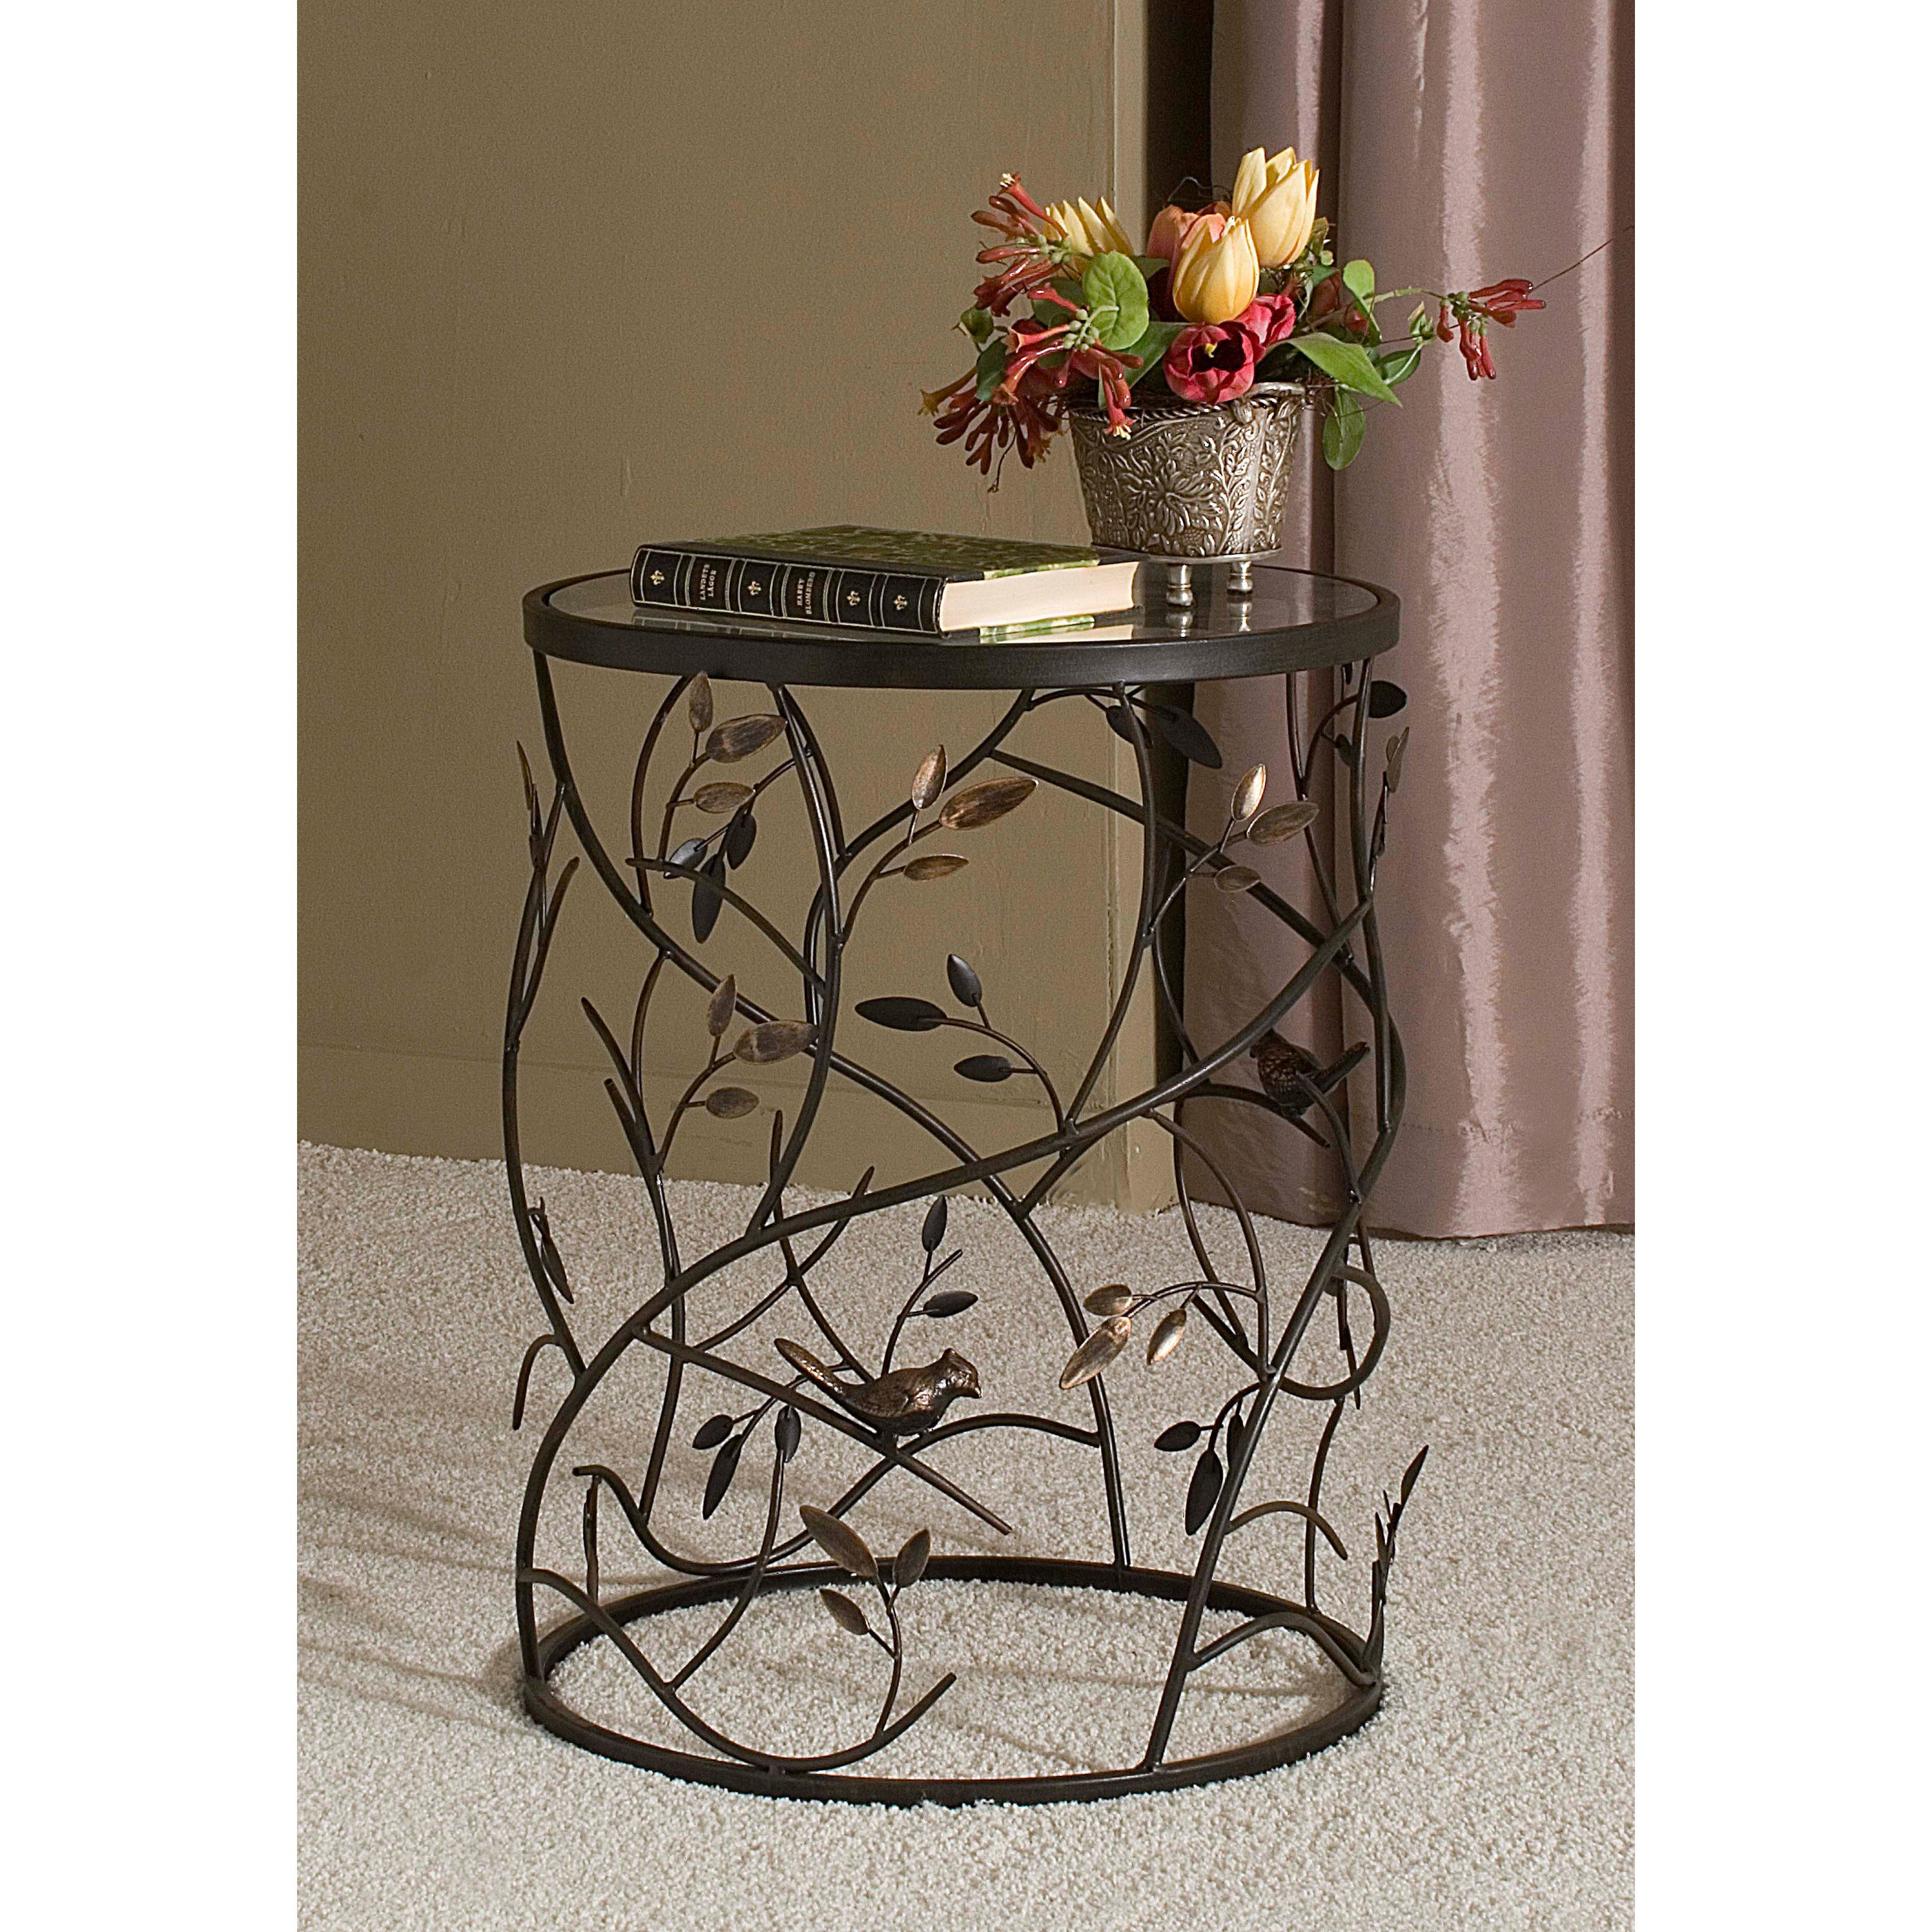 InnerSpace Luxury Products Large Barrel Table With Leaves   Bird Barrel  Table